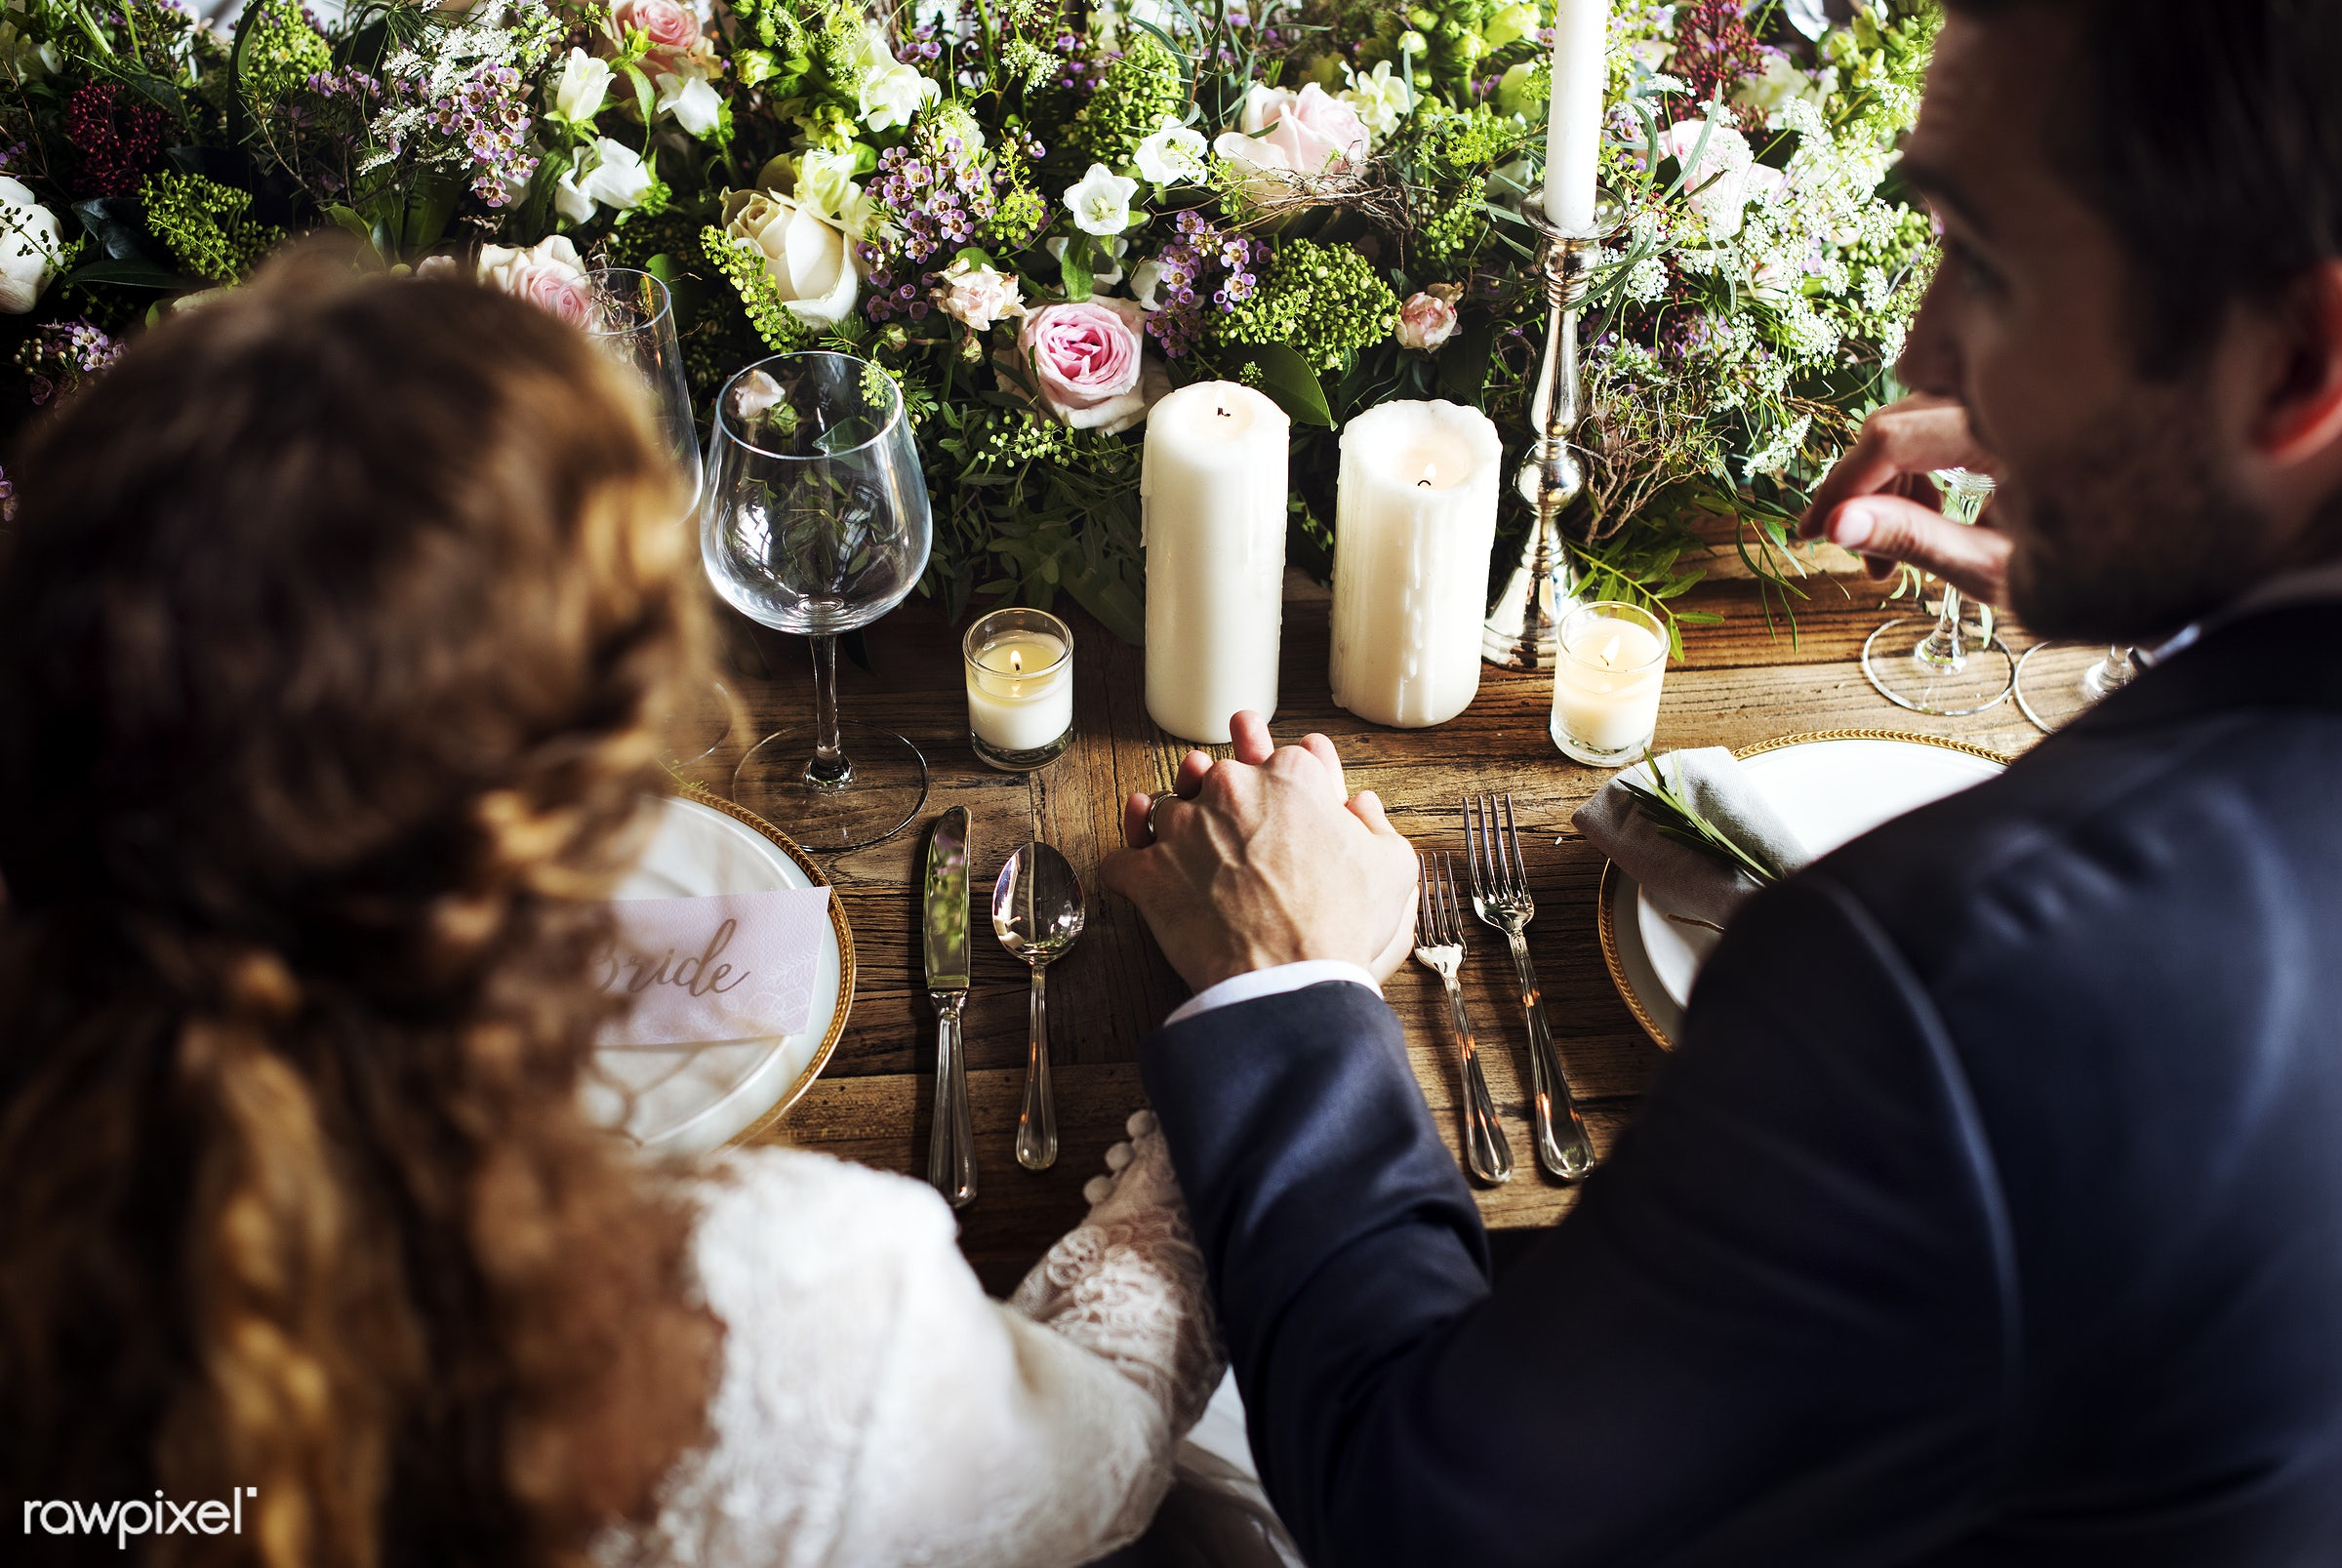 Bride and Groom Holding Hands Each Other on Wedding Reception - wedding, groom, adult, bridal, bride, celebrate, celebration...